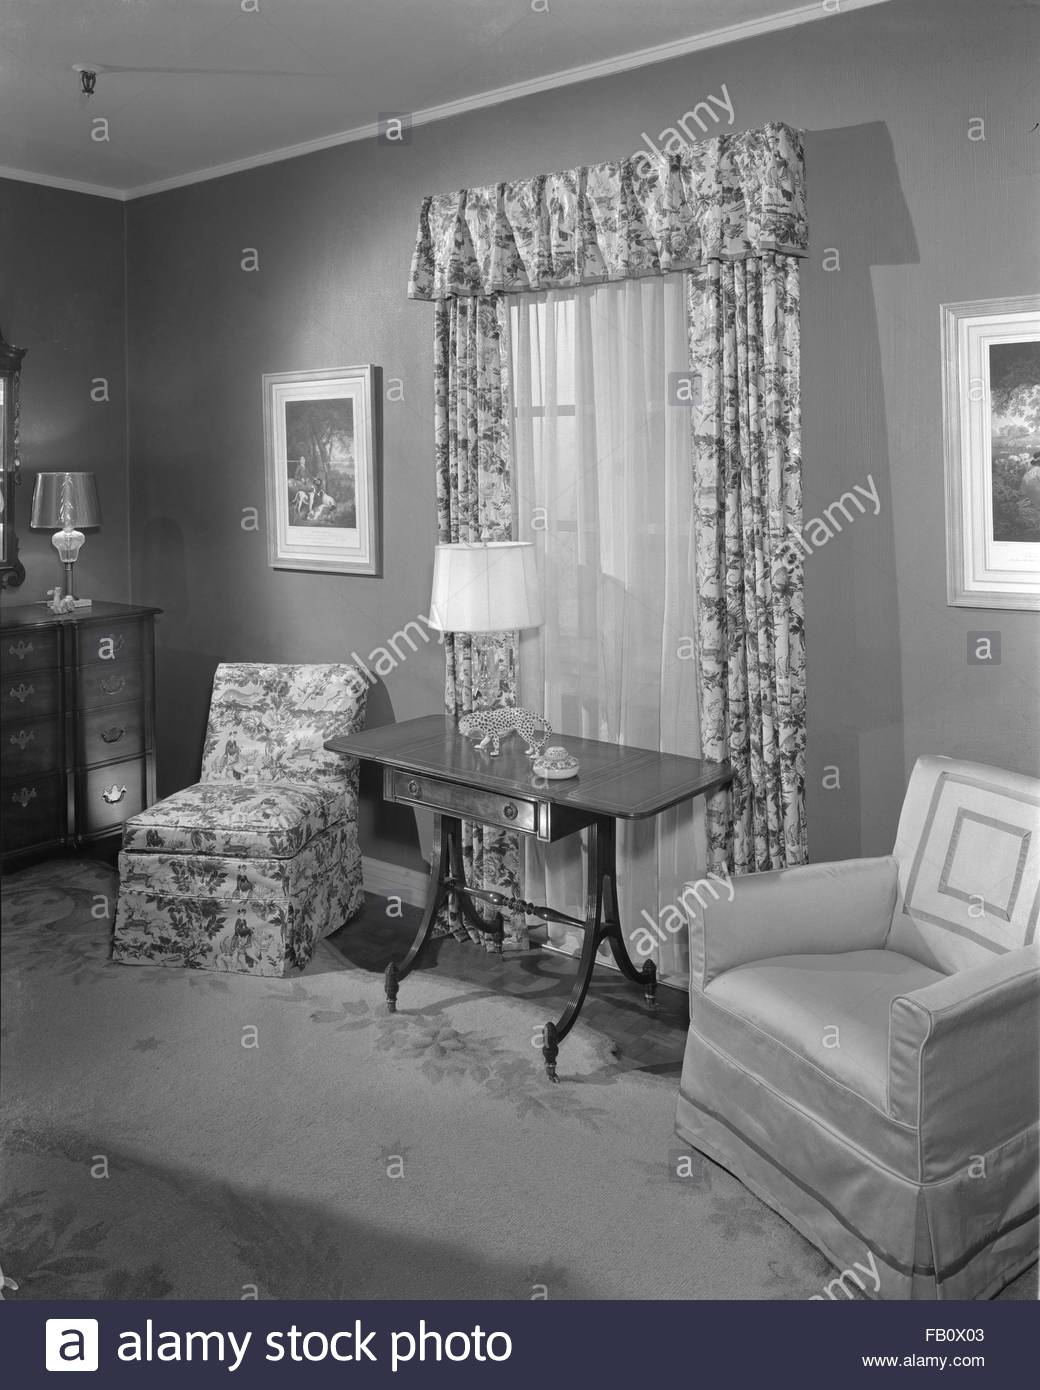 Bedroom Furniture At Marshall Field And Company 1943 Feb 25 Stock Photo Royalty Free Image